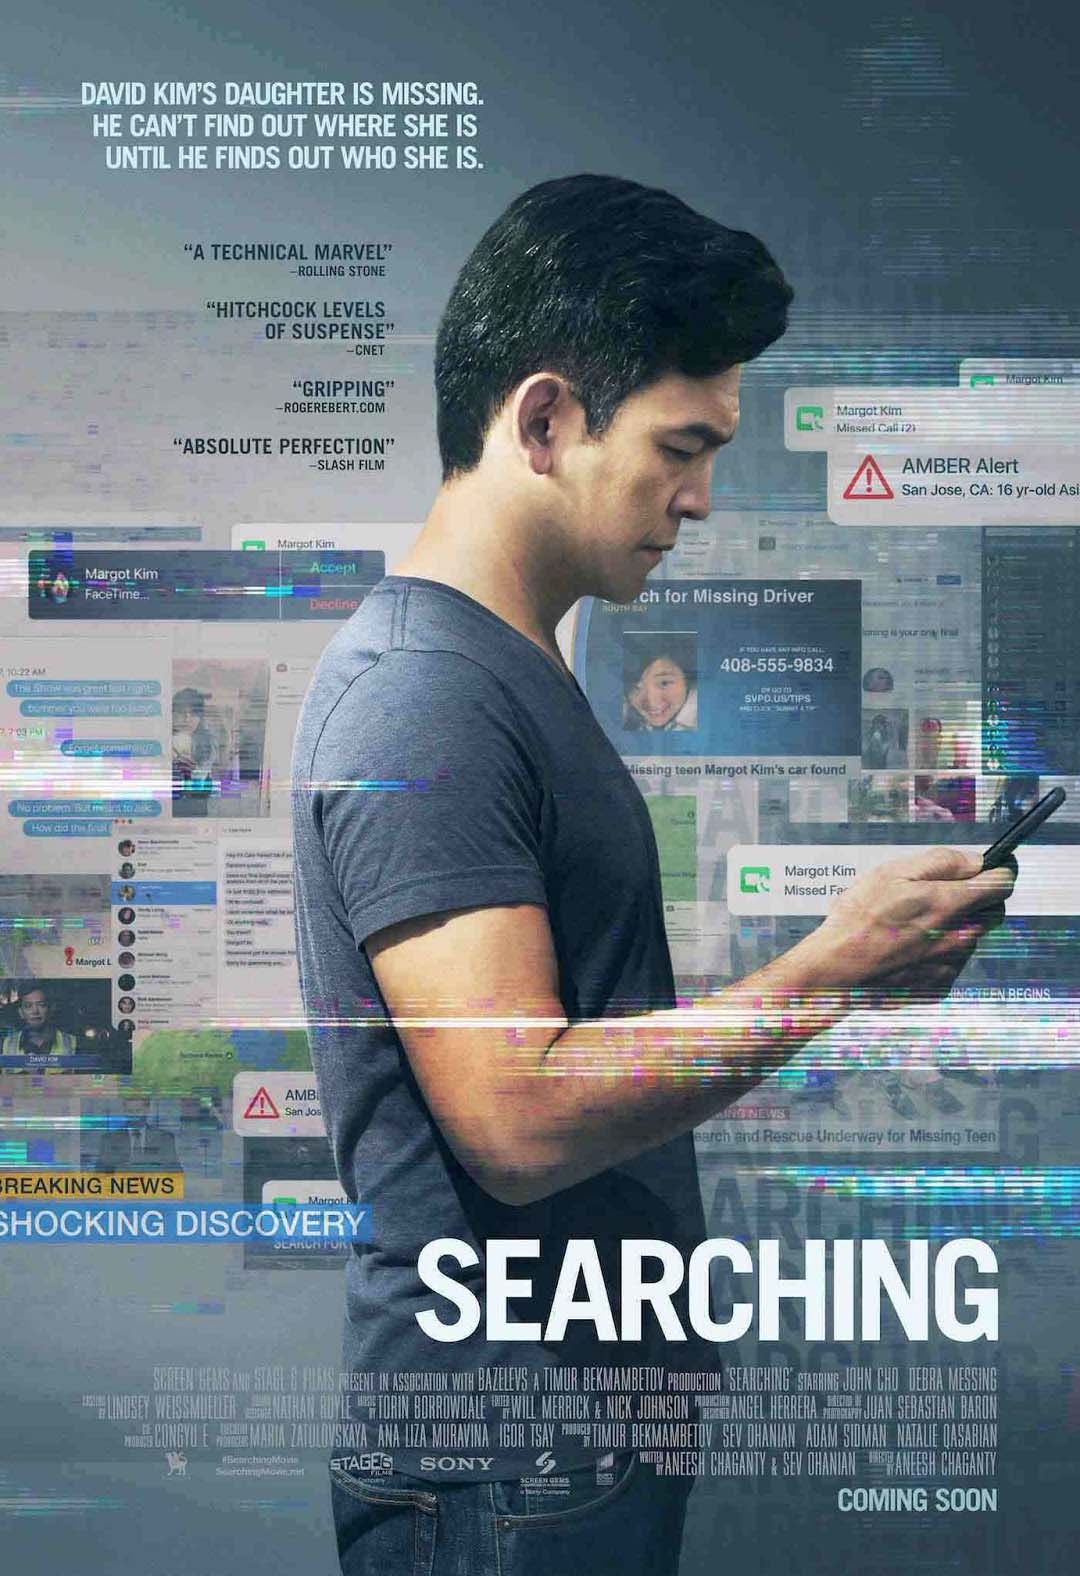 Searching (2018) Official Full Movie Free Online